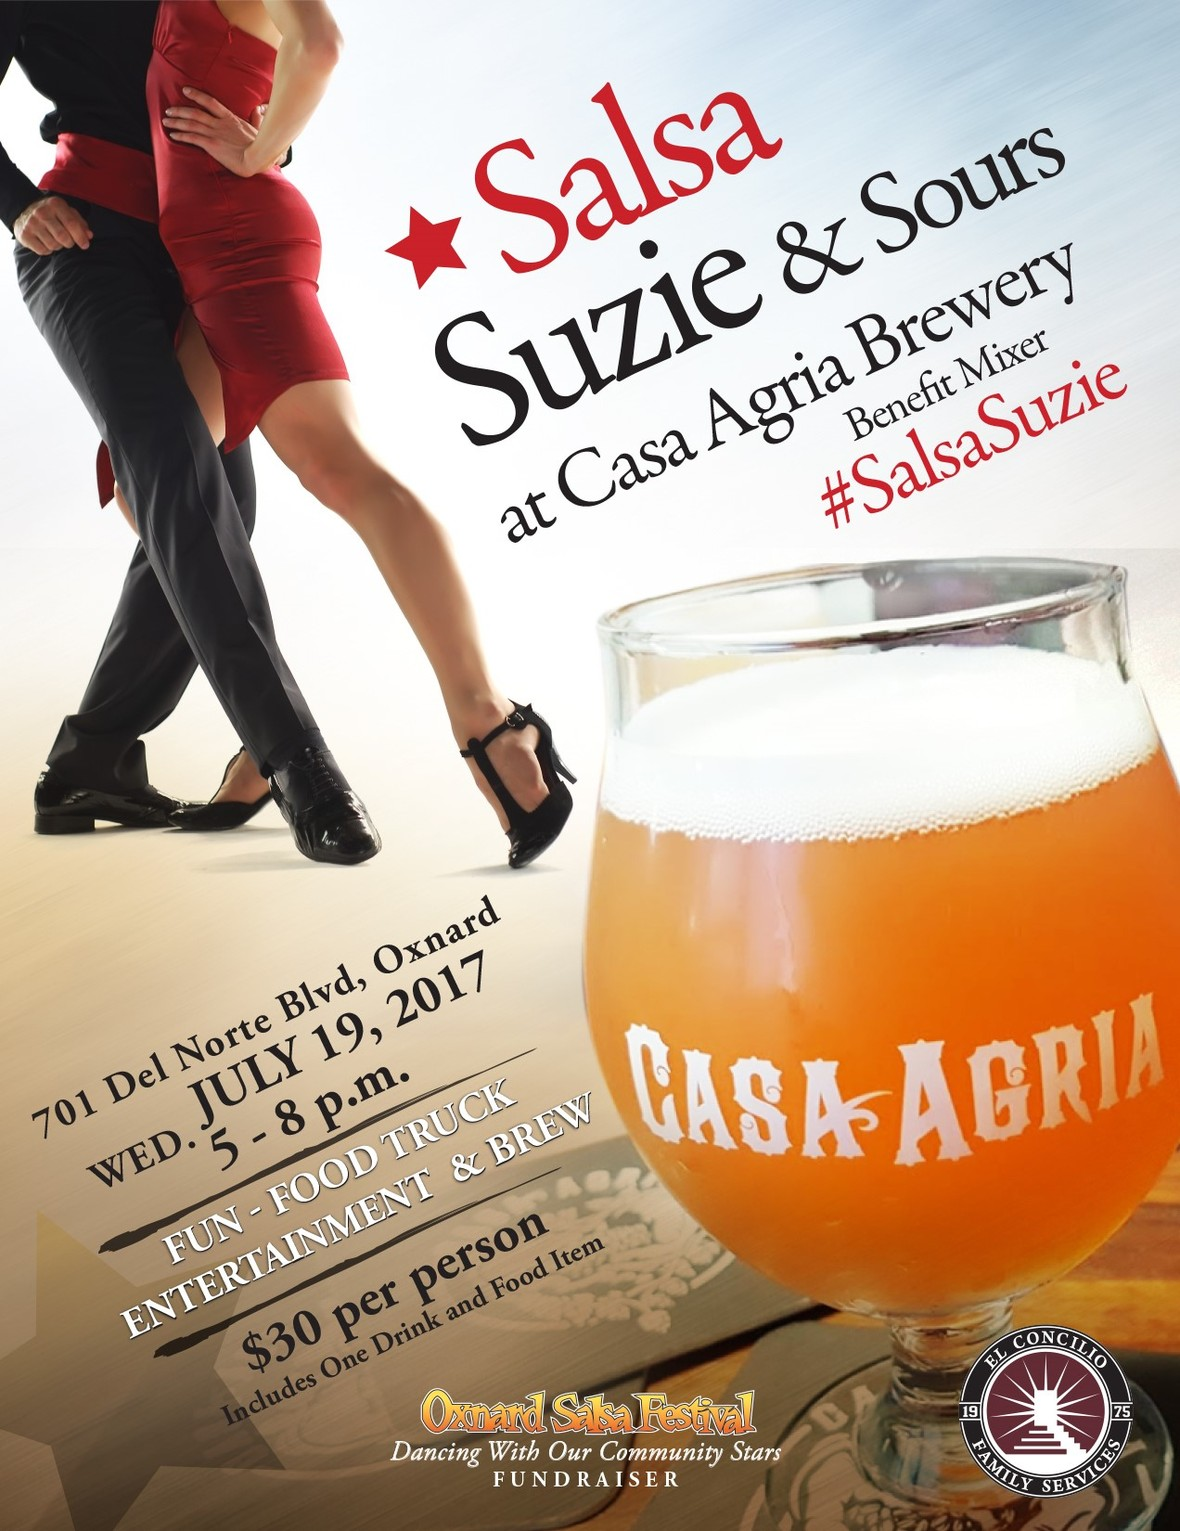 July 19 — Dancing with our Community Stars Pre-Event — Salsa Suzie & Sours Benefit Mixer!